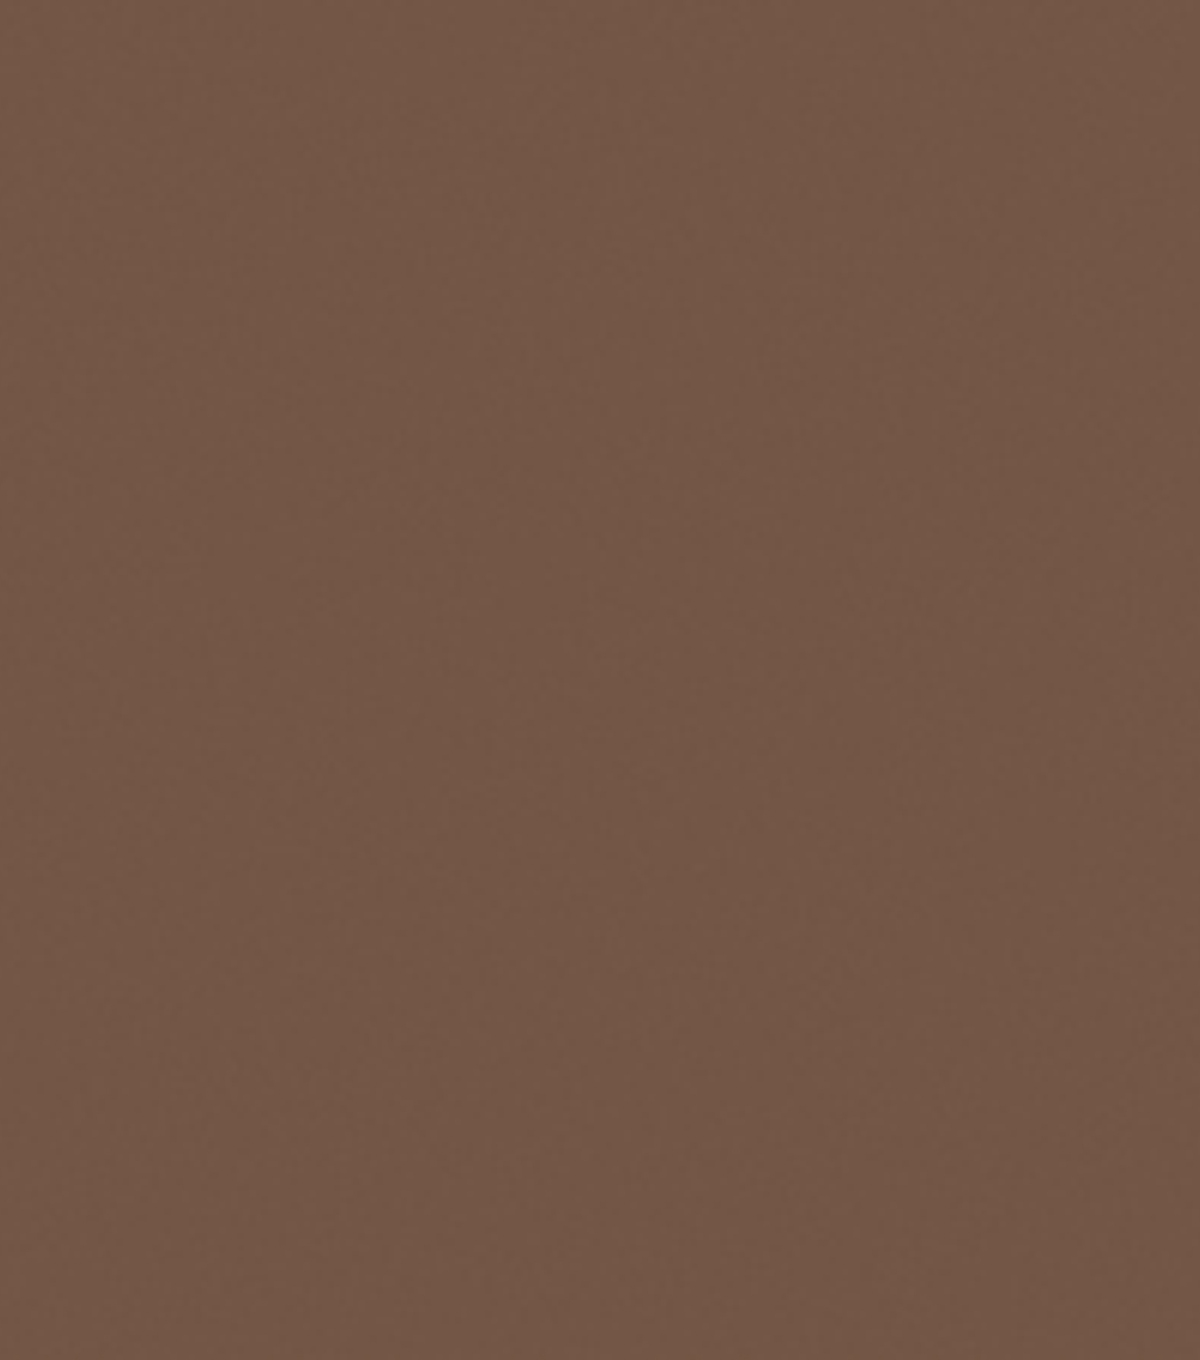 Delta Ceramcoat Acrylic Paint 2 oz, Brown Iron Oxide